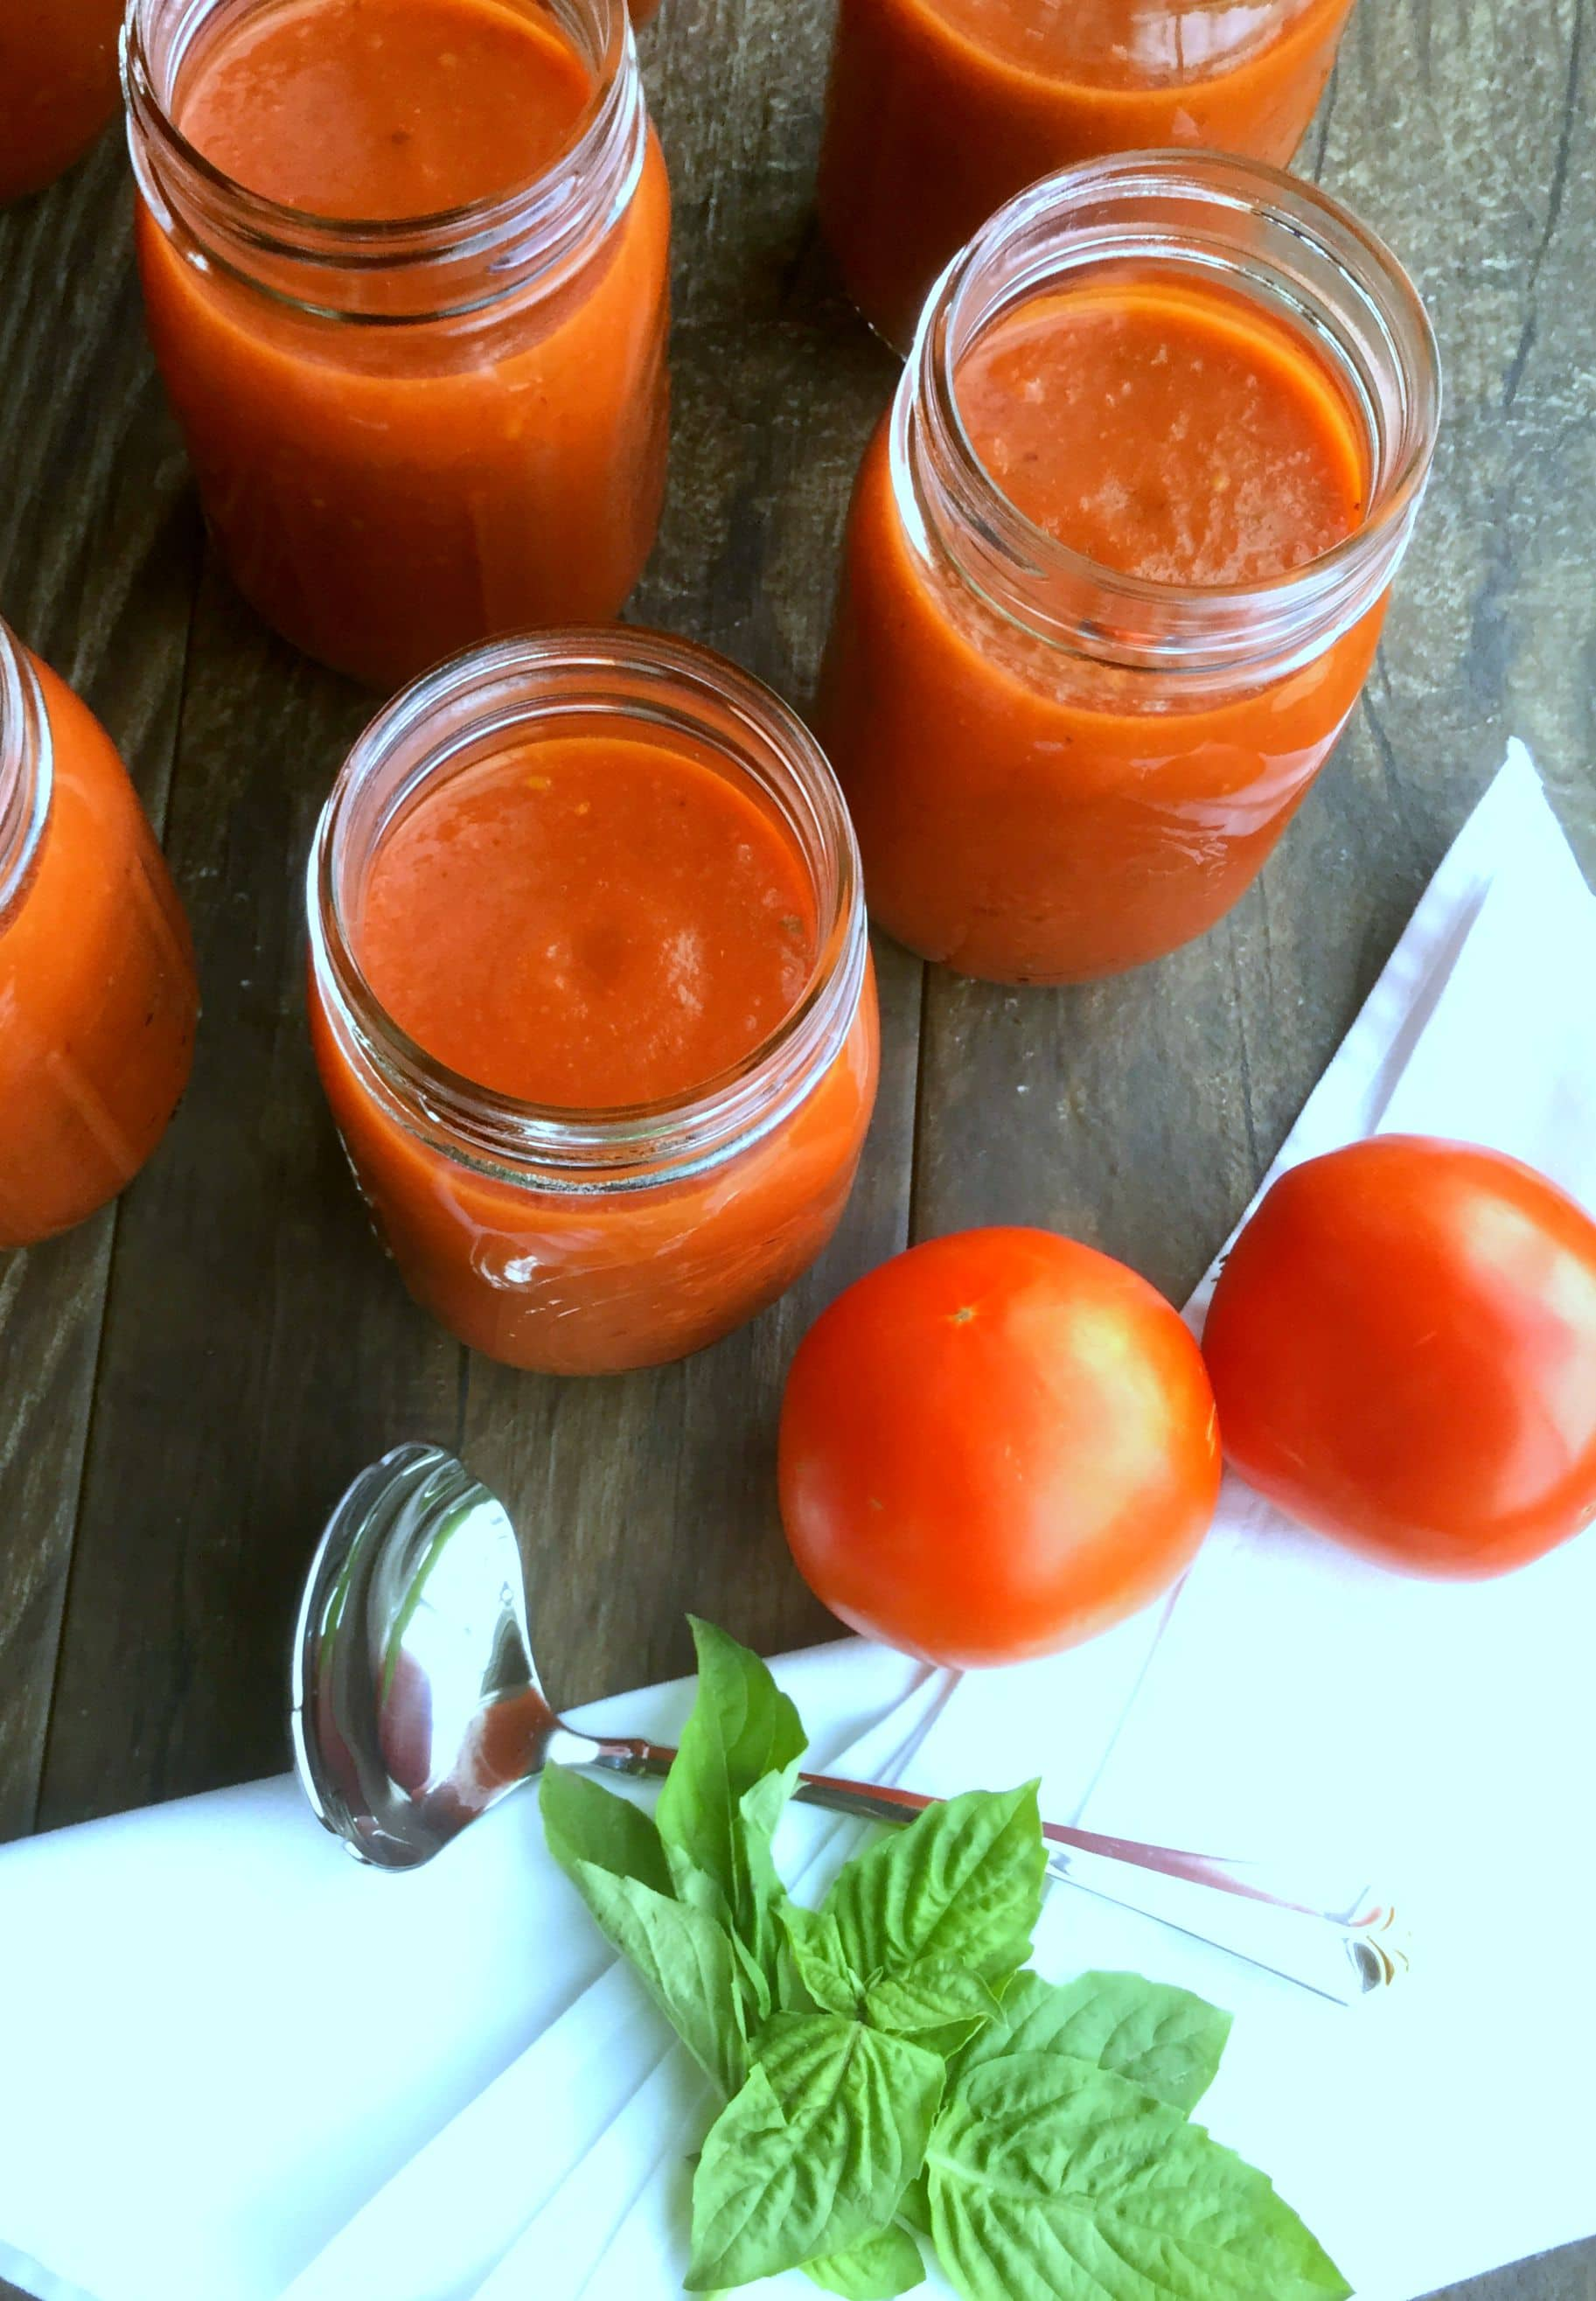 The ultimate signature roasted tomatoes sauce, flavorful in taste and rich in consistency. Make this easy sauce to use in hundreds of meals, or store and enjoy later.